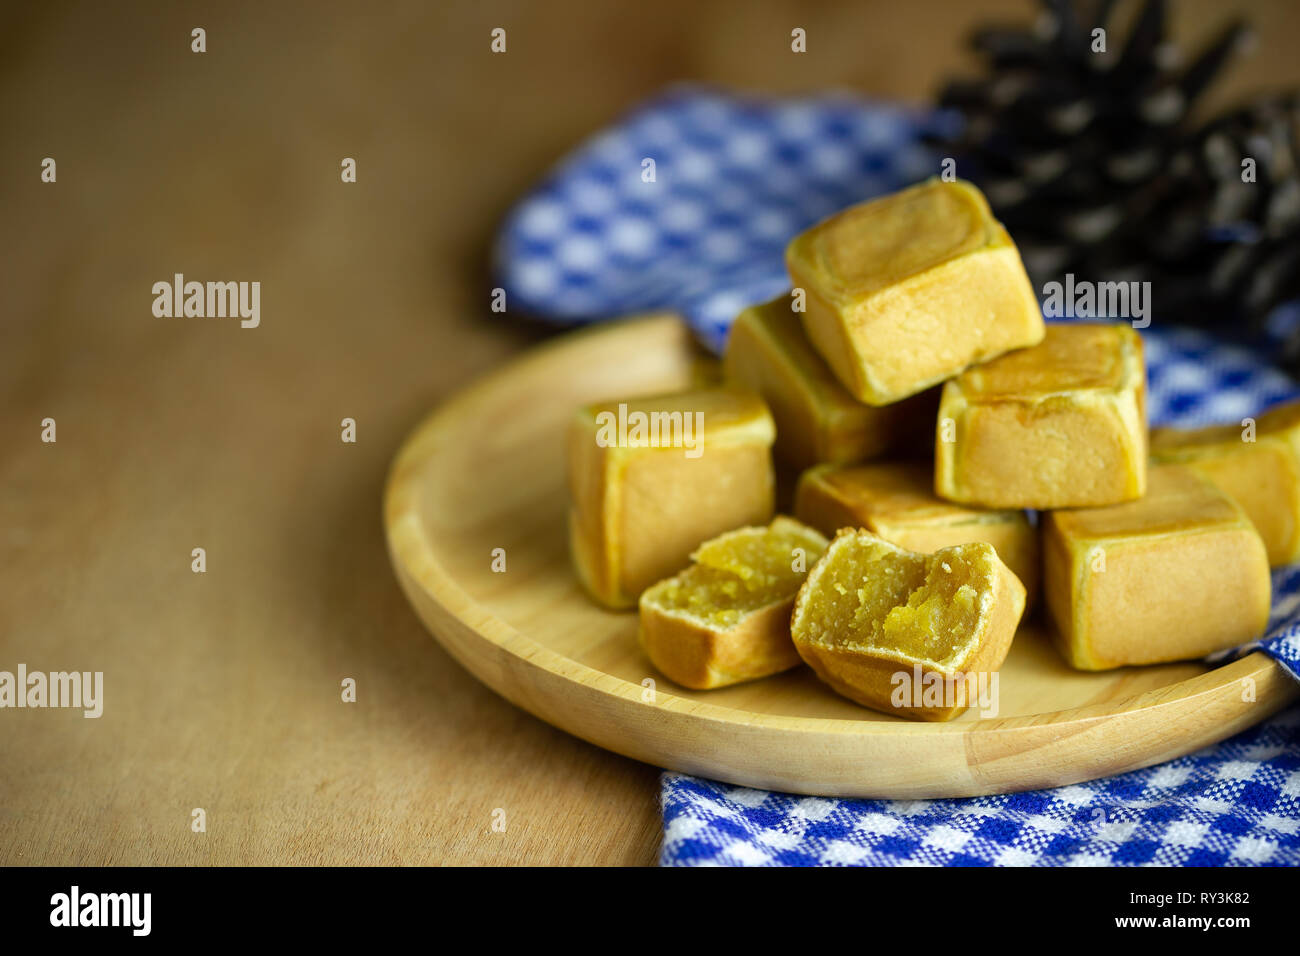 Chinese cakes dice shaped and dry pine flower are placed on a brown wooden table and have blue patterned tablecloths. - Stock Image